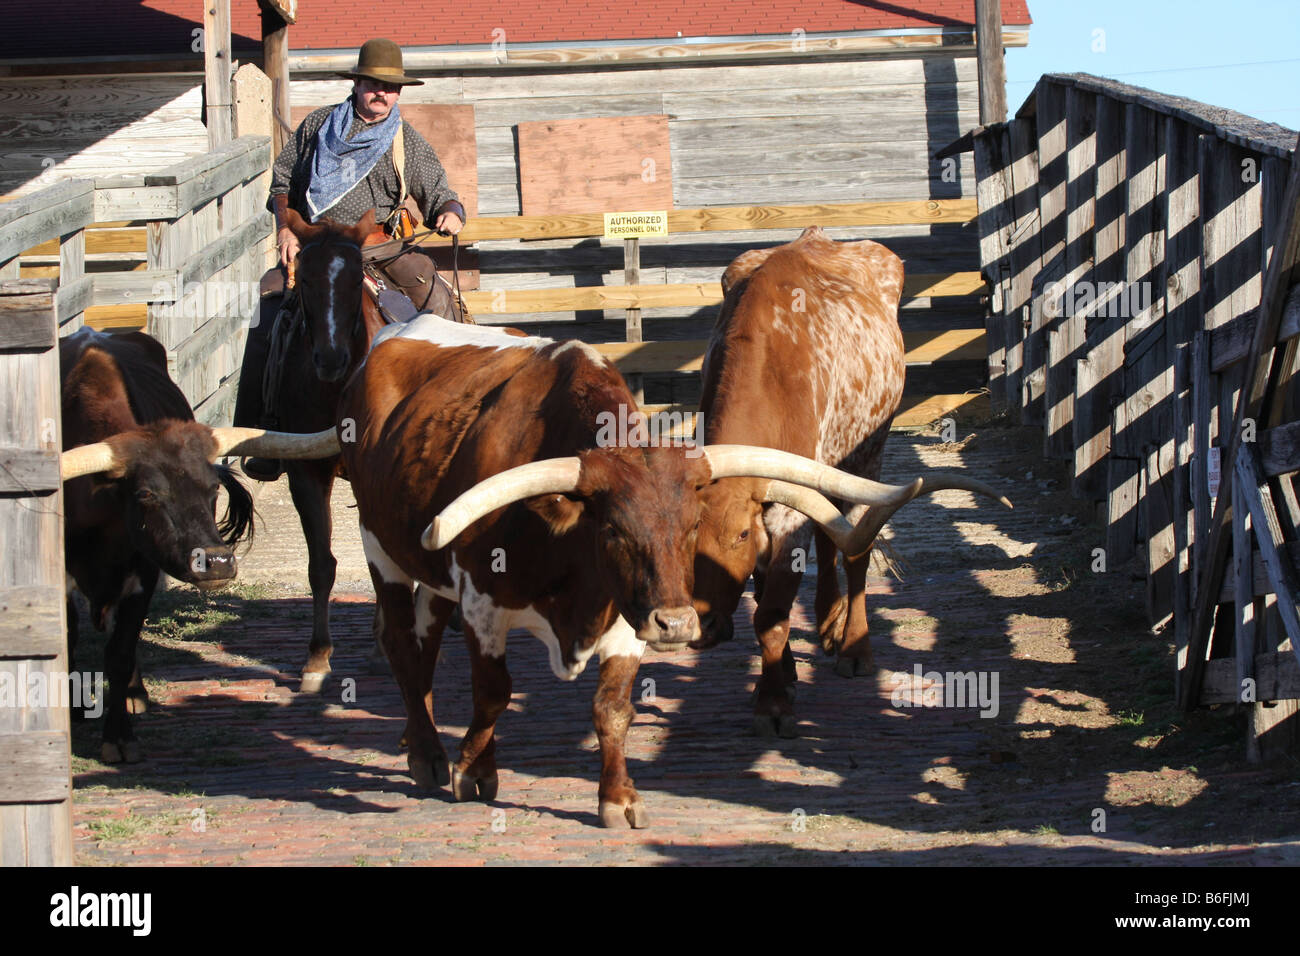 The Texas Longhorn Cattle Drive At The Stockyards In Fort Worth Texas Stock Photo Alamy